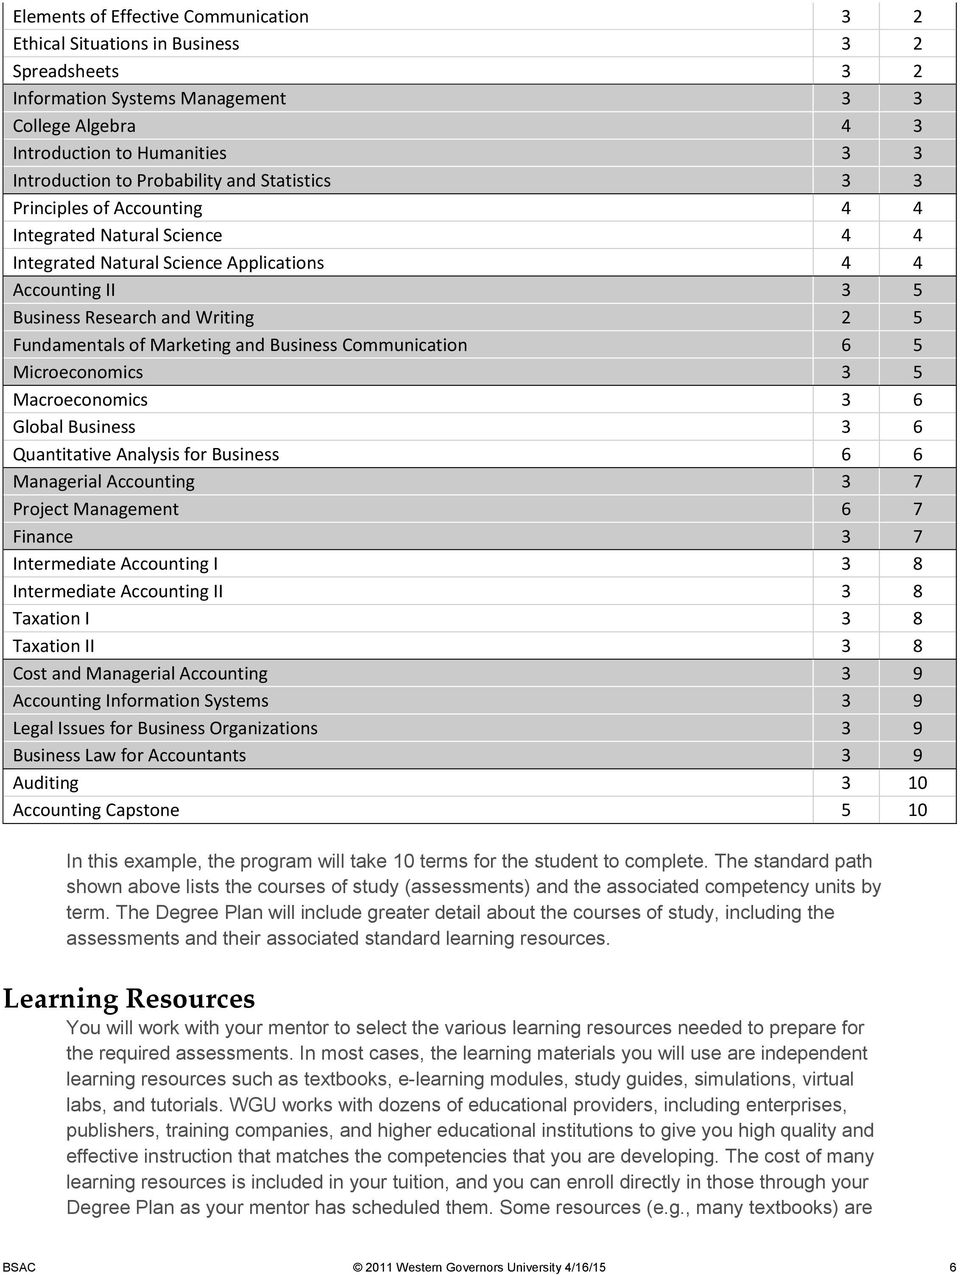 of Marketing and Business Communication 6 5 Microeconomics 3 5 Macroeconomics 3 6 Global Business 3 6 Quantitative Analysis for Business 6 6 Managerial Accounting 3 7 Project Management 6 7 Finance 3